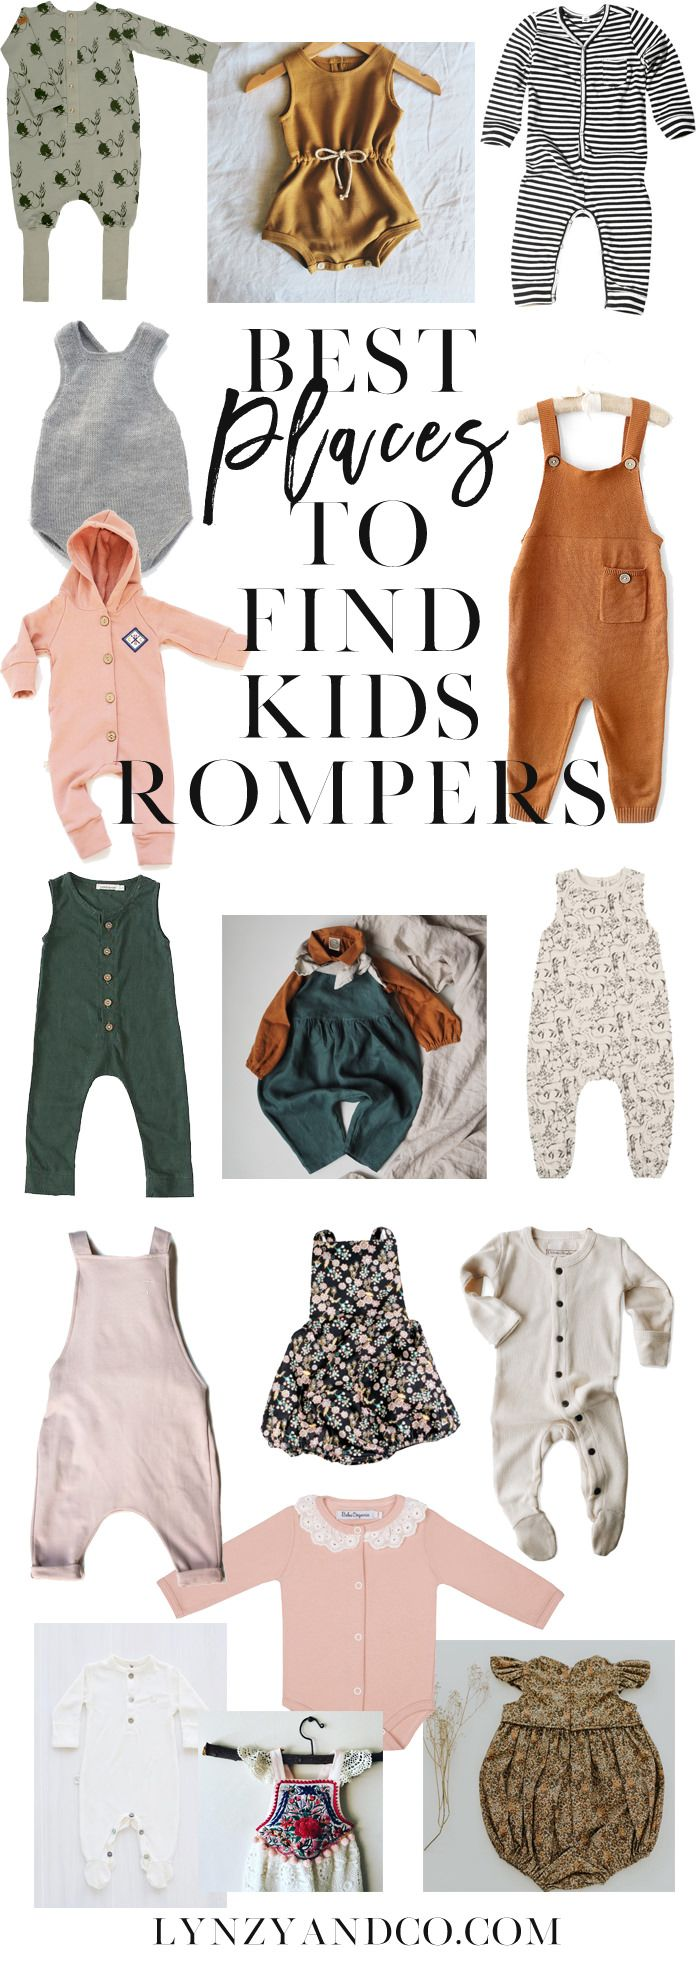 Best Baby Clothes Brands Interesting Where To Buy The Best Kid's Rompers  Kids S Kids Rompers And Kids Decorating Inspiration